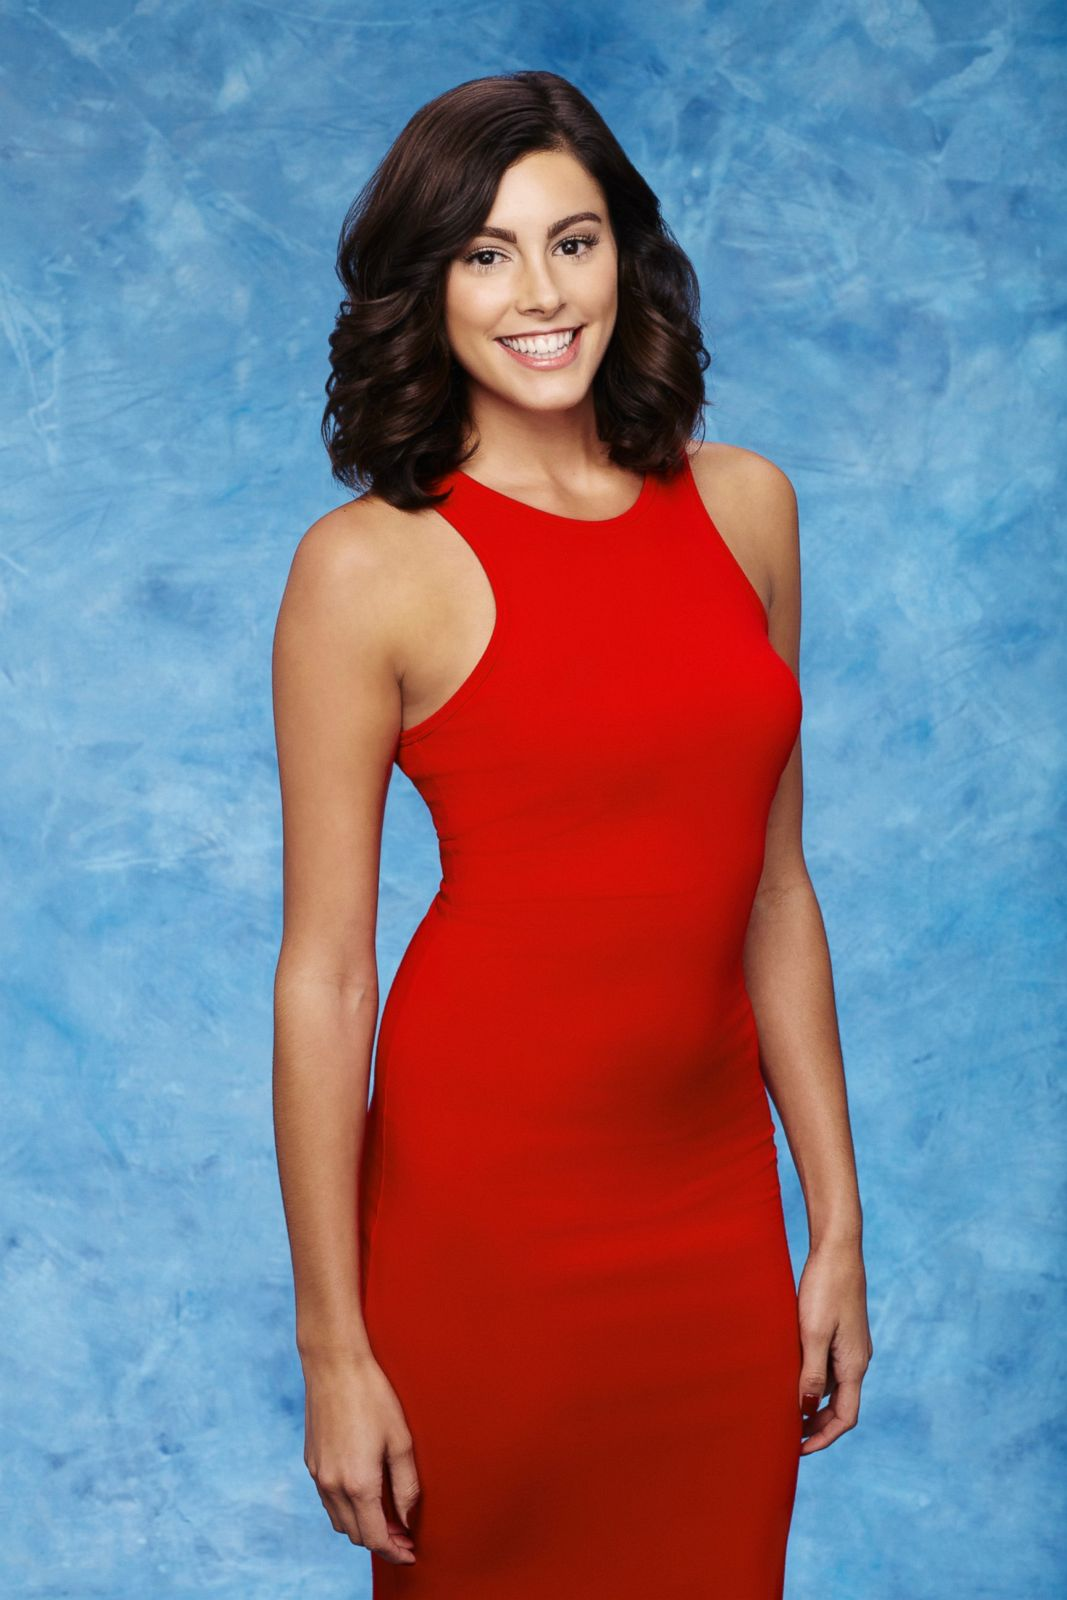 Meet The 28 Women On Bachelor 2016 Photos